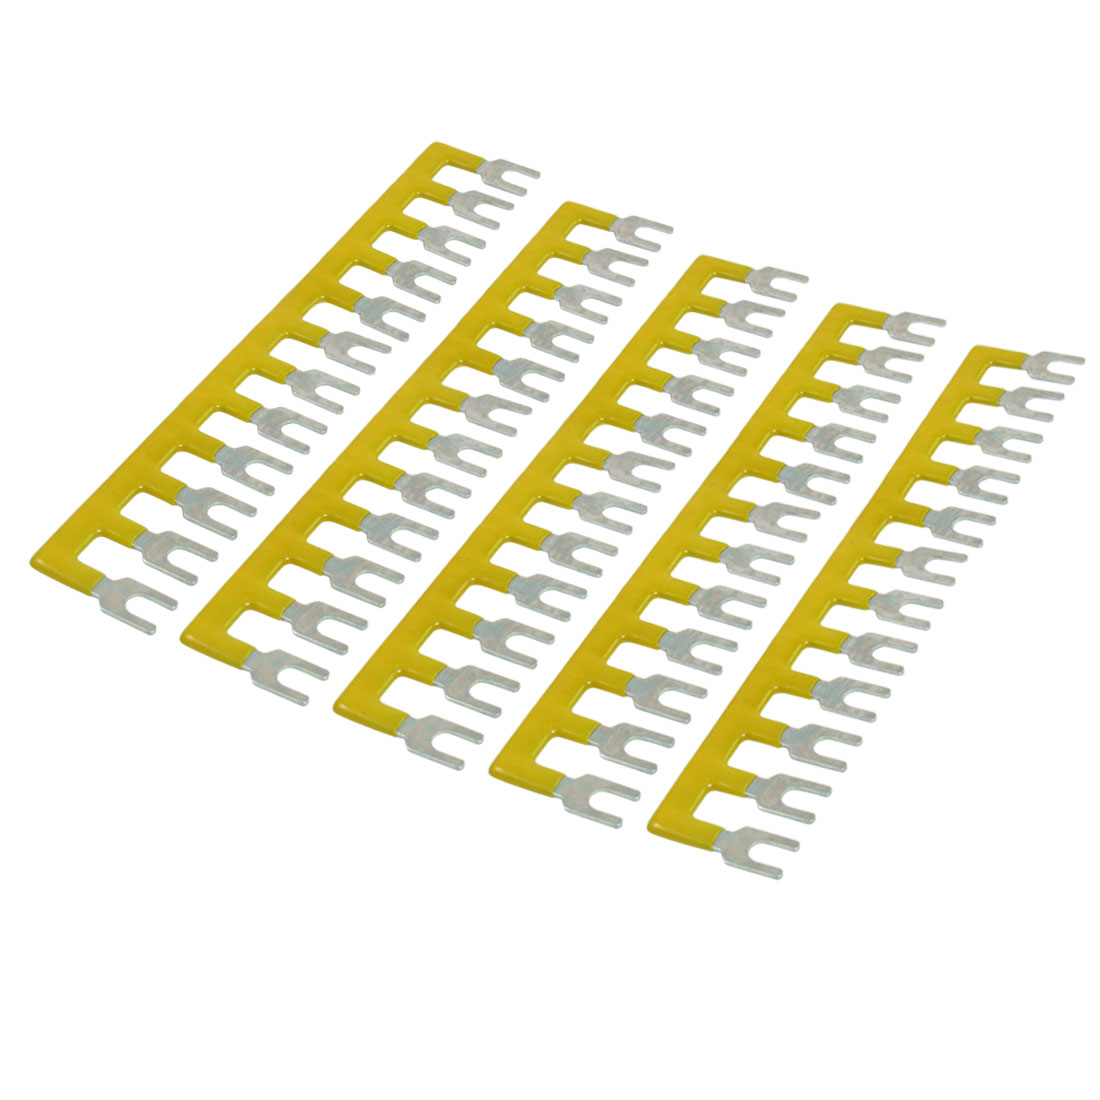 400V 10A 12 Postions Pre Insulated Terminal Barrier Strip Yellow 5 Pcs